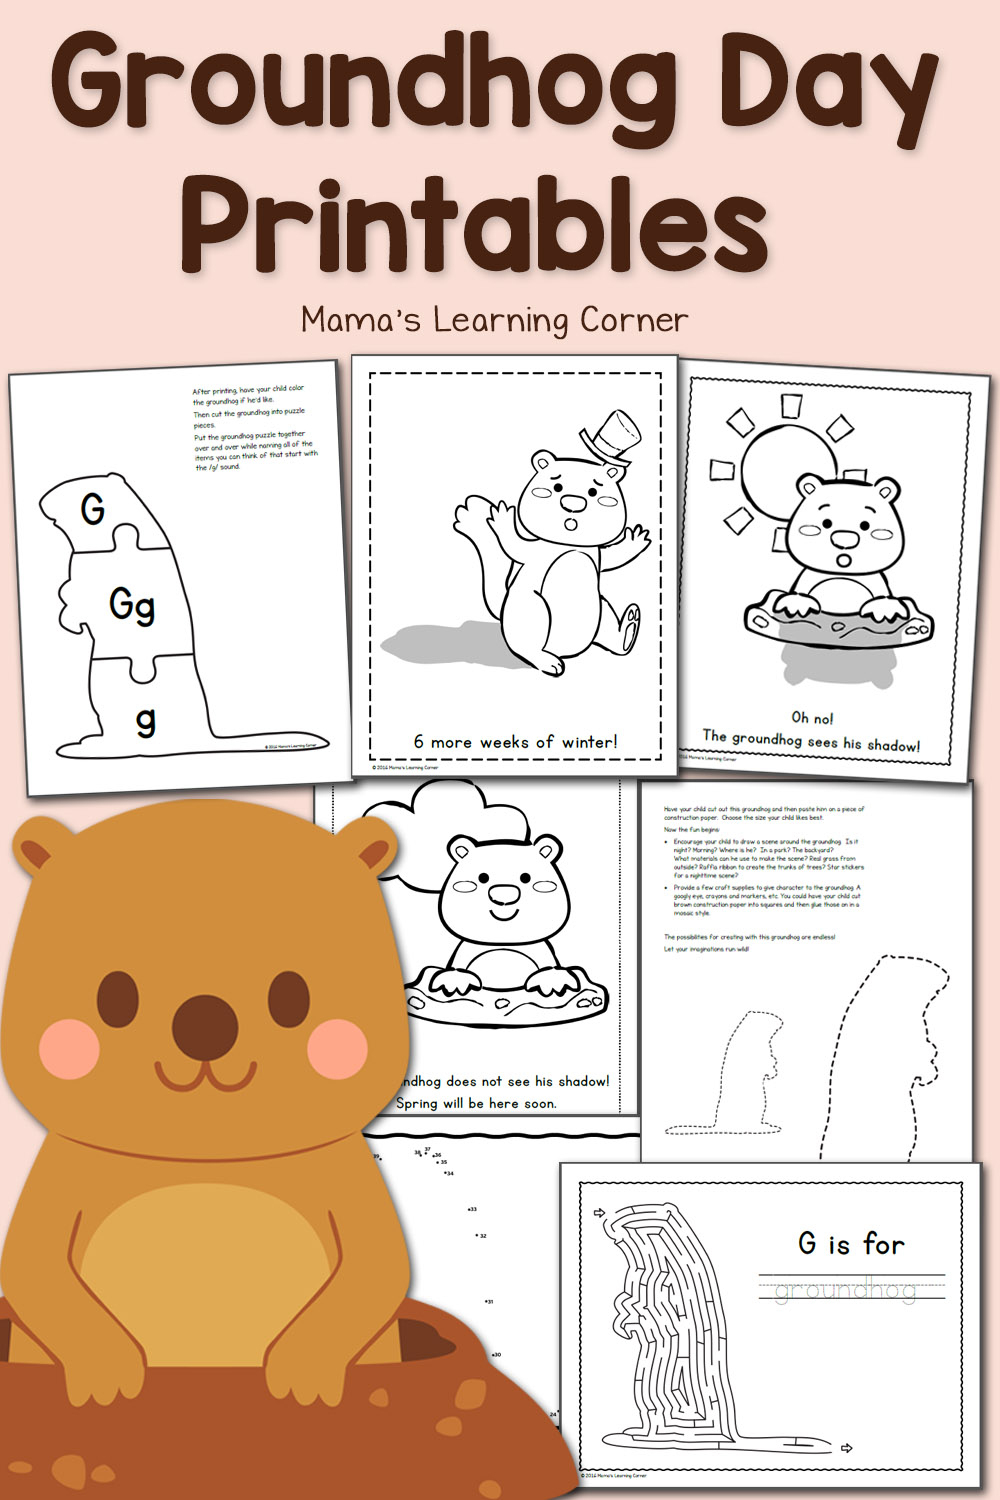 Free Groundhog Day Printables! - Mamas Learning Corner | Free Printable Worksheets For Groundhog Day